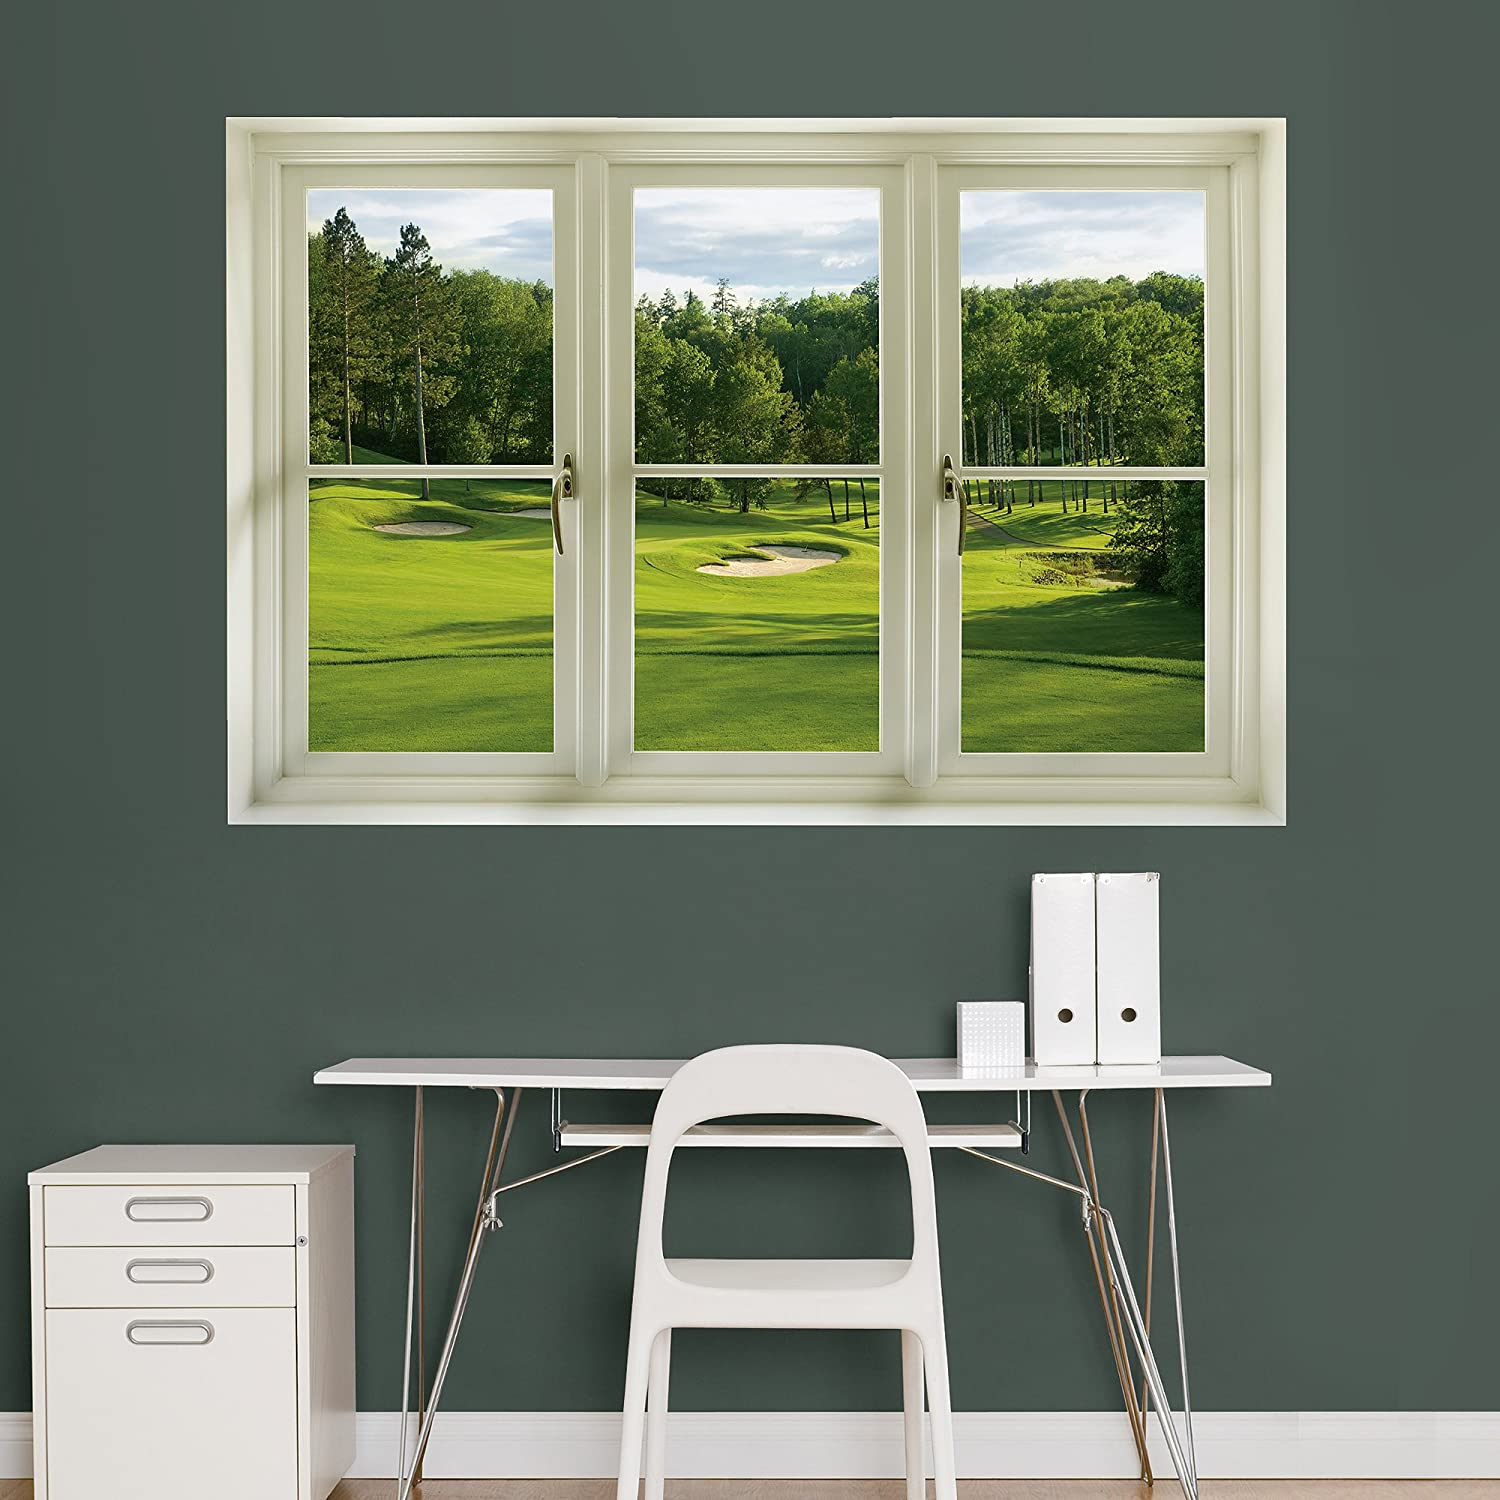 golf office decor. Golf Office Decor. Amazon.com: Fathead Wall Decal, Decor